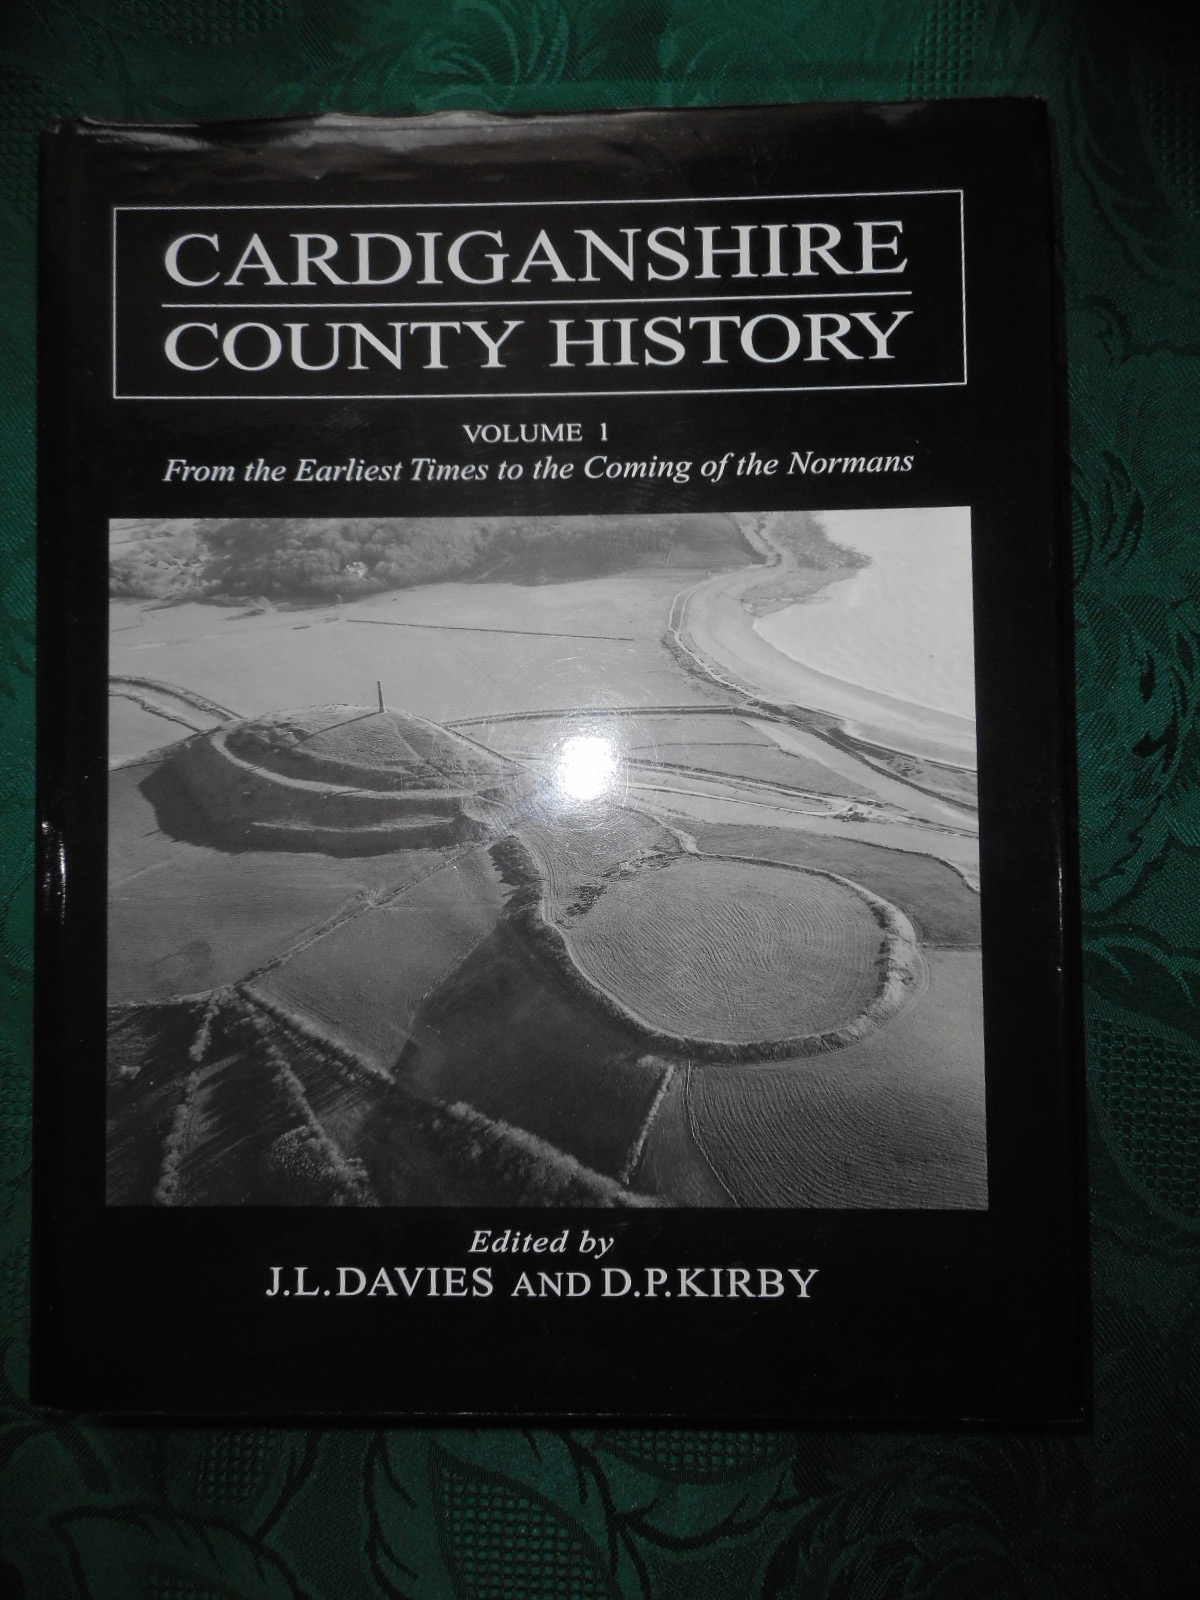 Image for Cardiganshire County History Volume 1: From the Earliest Times to the Coming of the Normans.